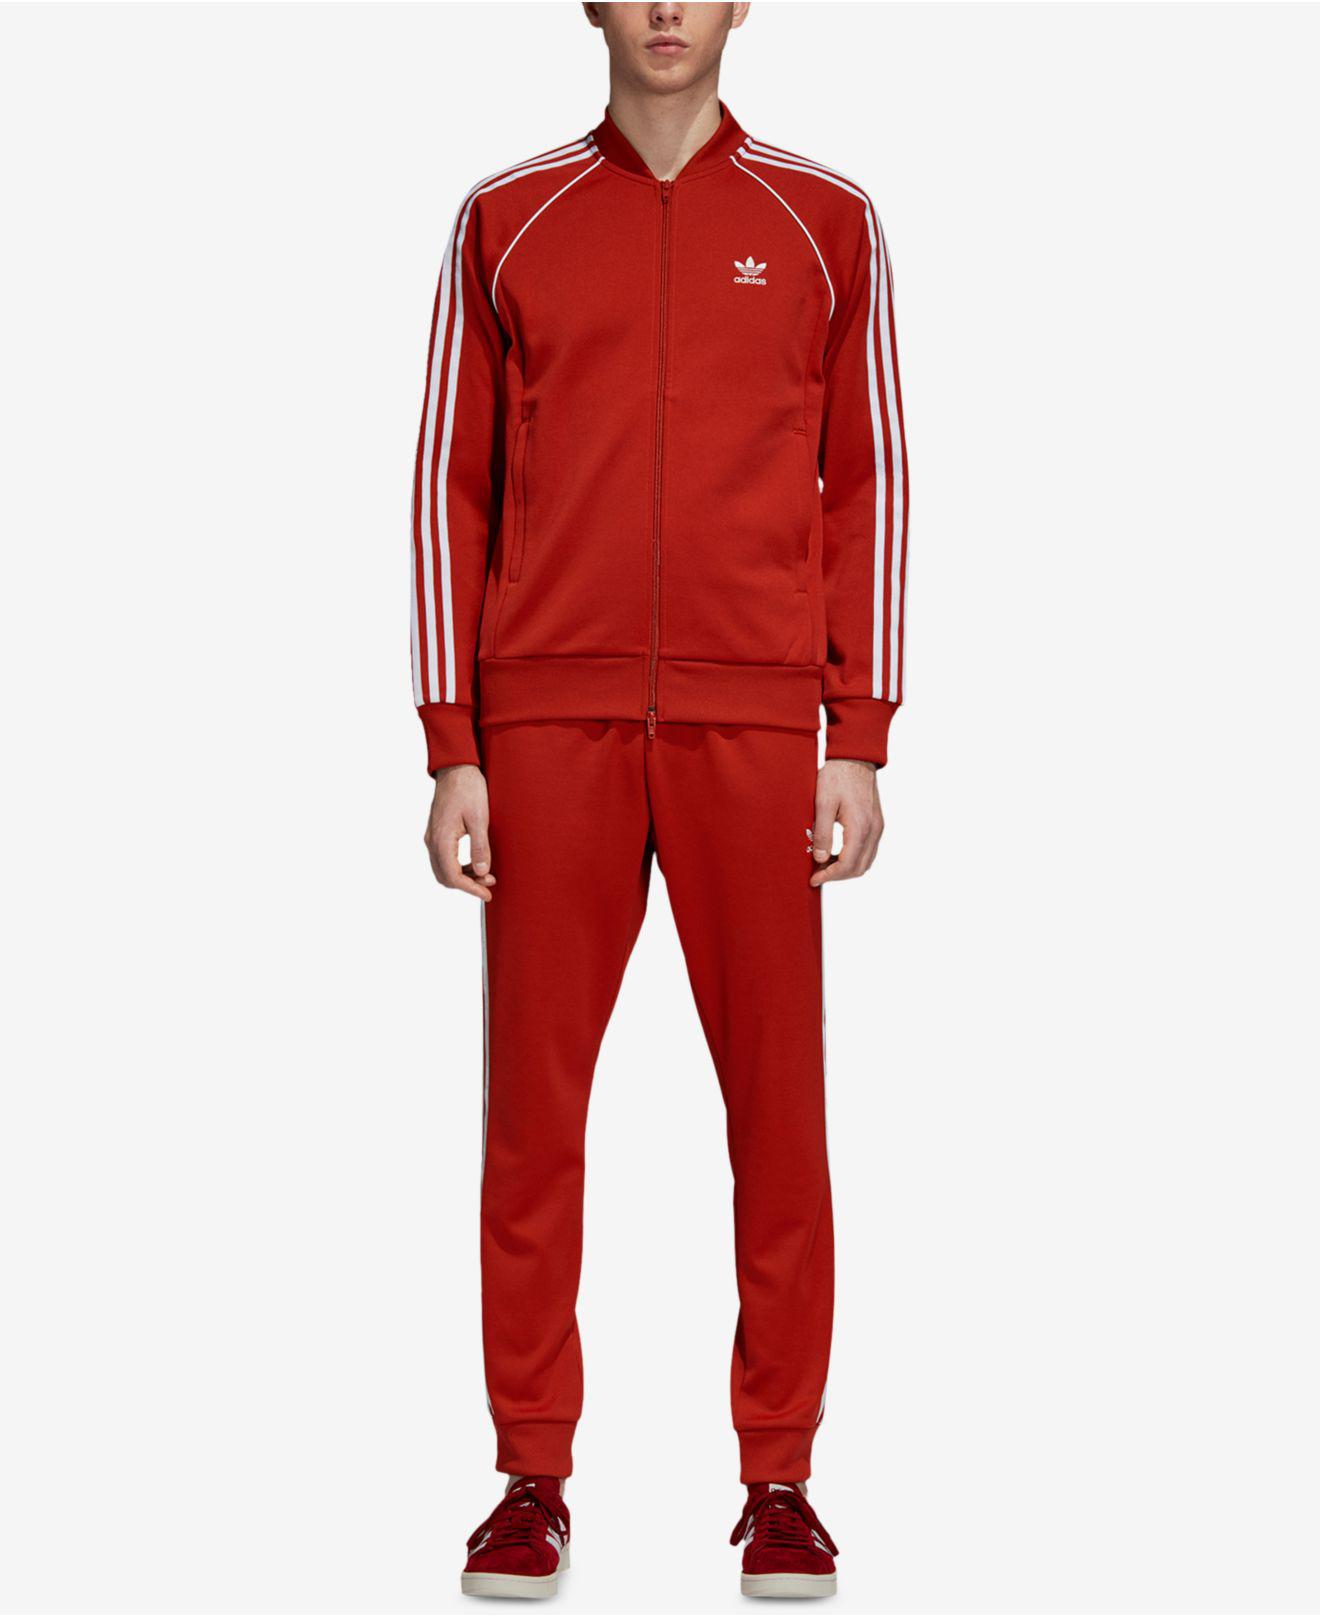 official photos 82b61 9d70d Lyst - adidas Originals Adicolor Superstar Track Jacket in Red for Men